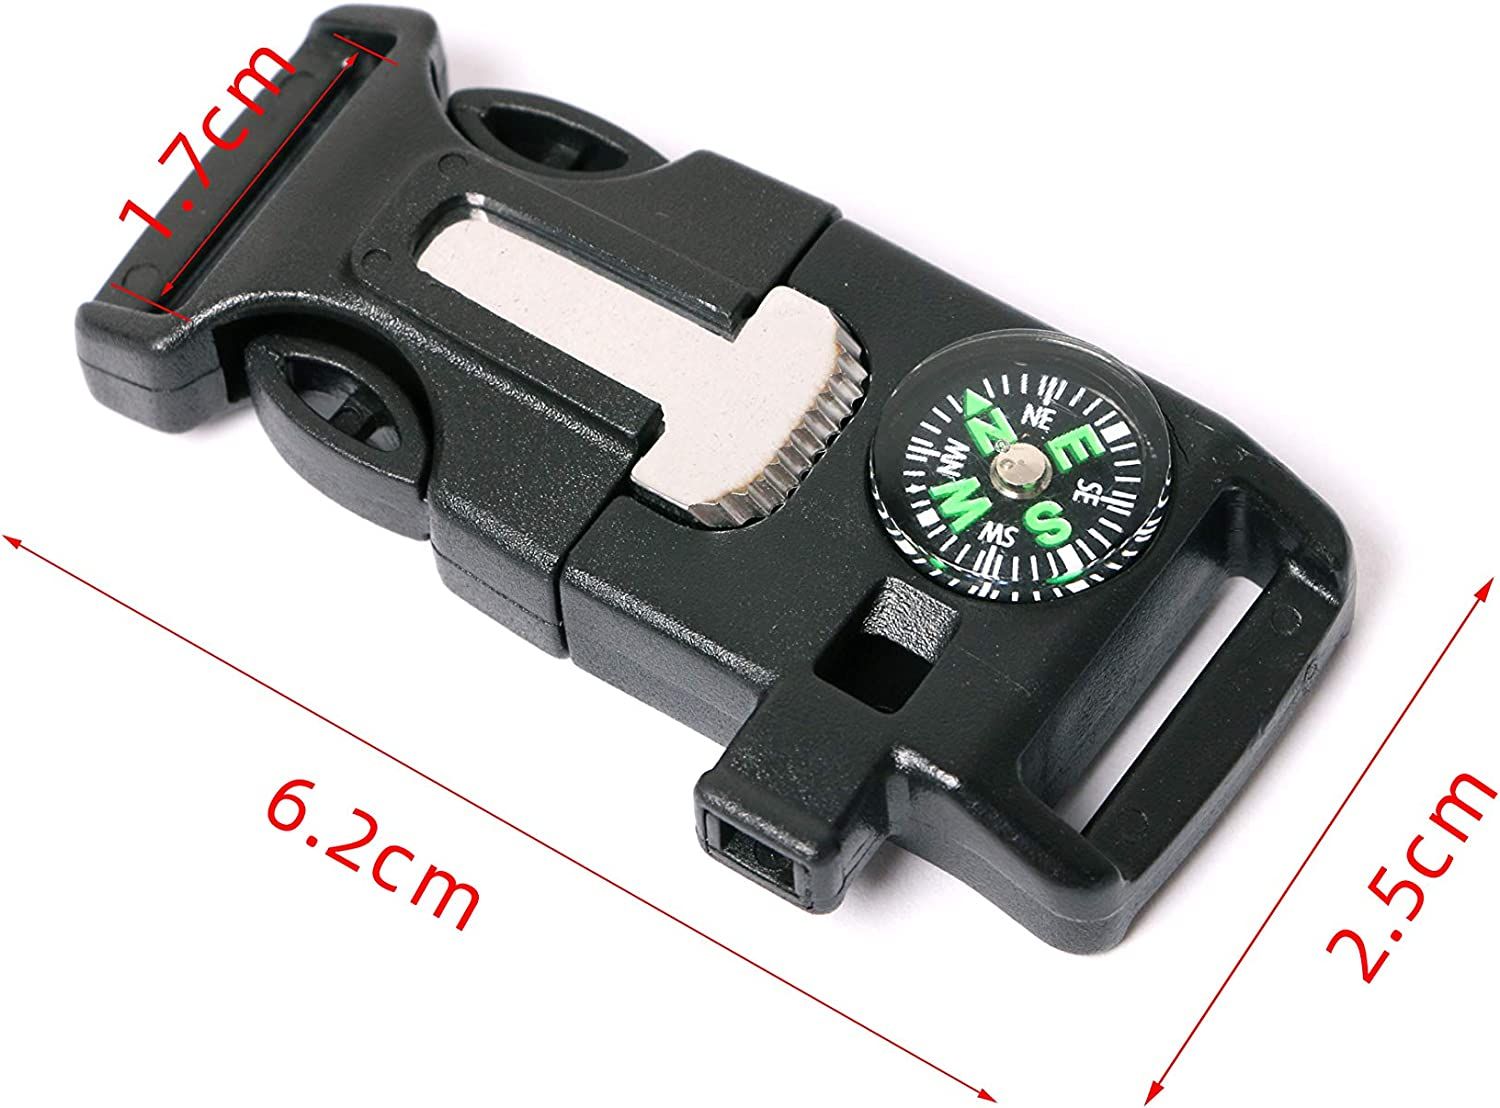 J-Chen 10 PCS Emergency Whistle Buckle Come with Compass Fire Starter Flint Scraper for Outdoor Camping Paracord Bracelet